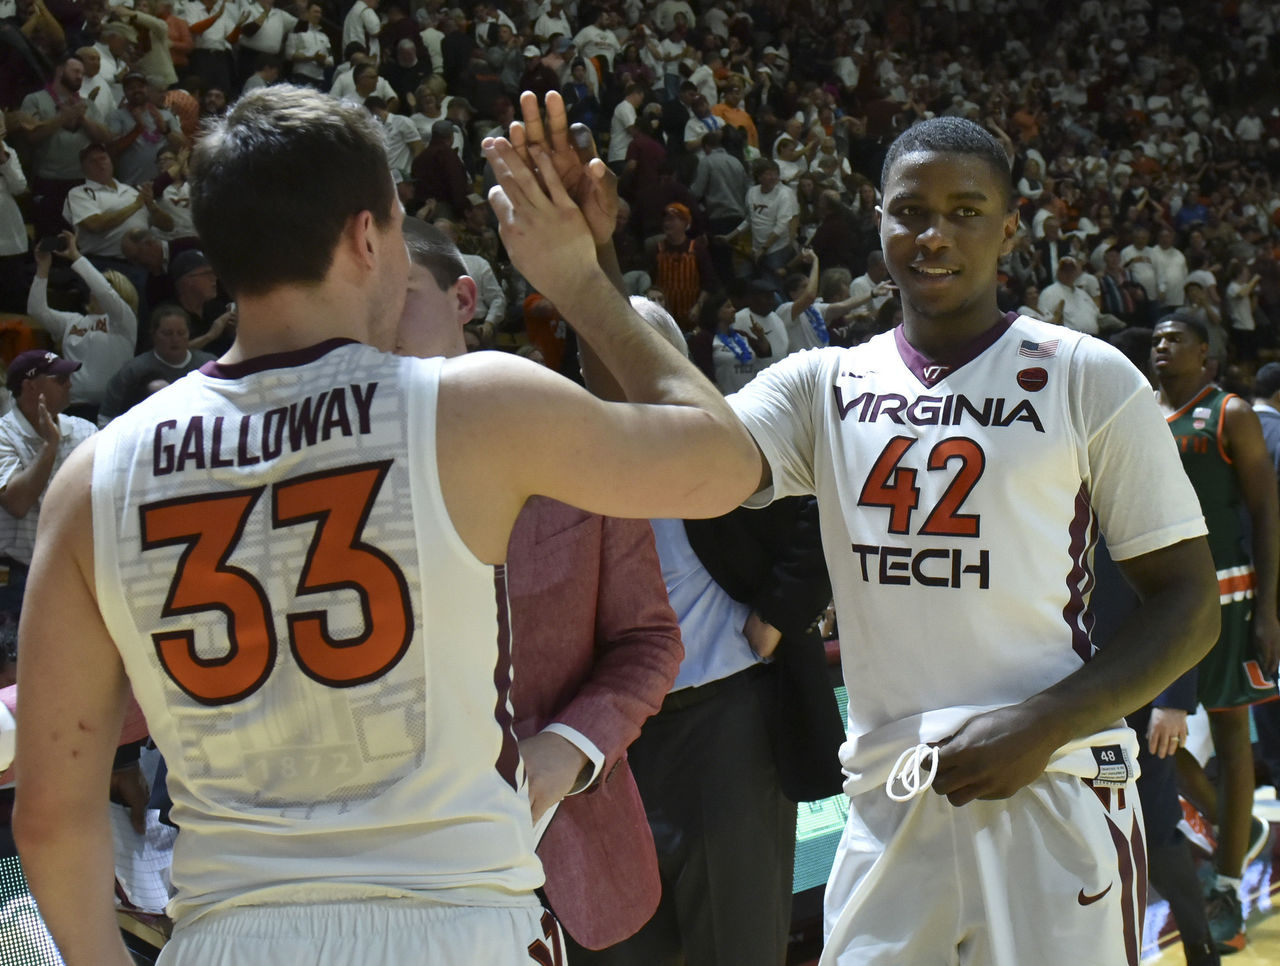 Cropped_2017-02-28t041203z_368715904_nocid_rtrmadp_3_ncaa-basketball-miami-at-virginia-tech